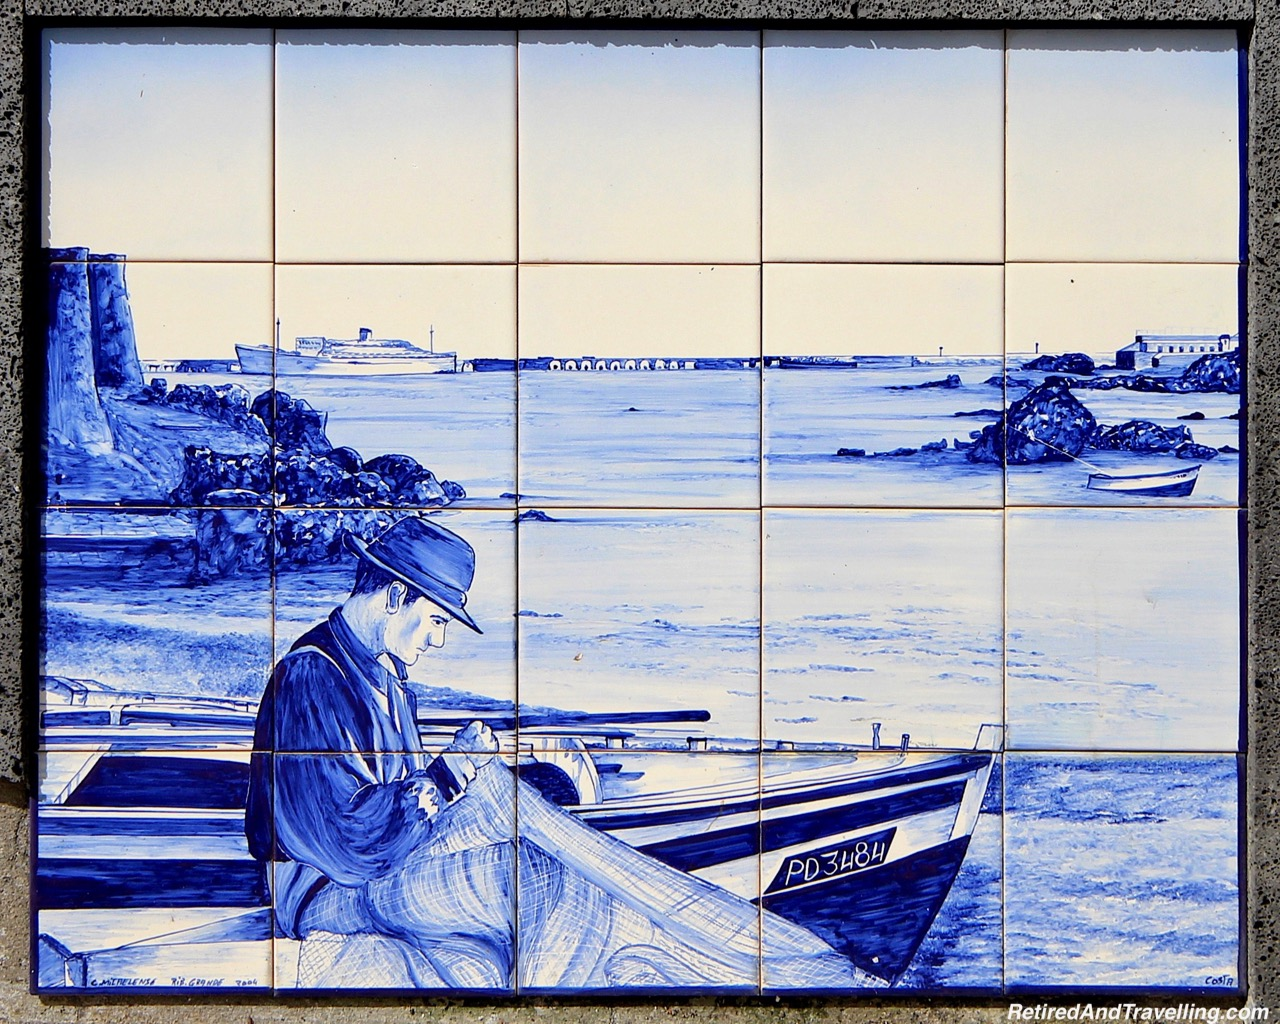 Azores Portuguese Blue Tile Street Art - 10 Days In the Azores.jpg